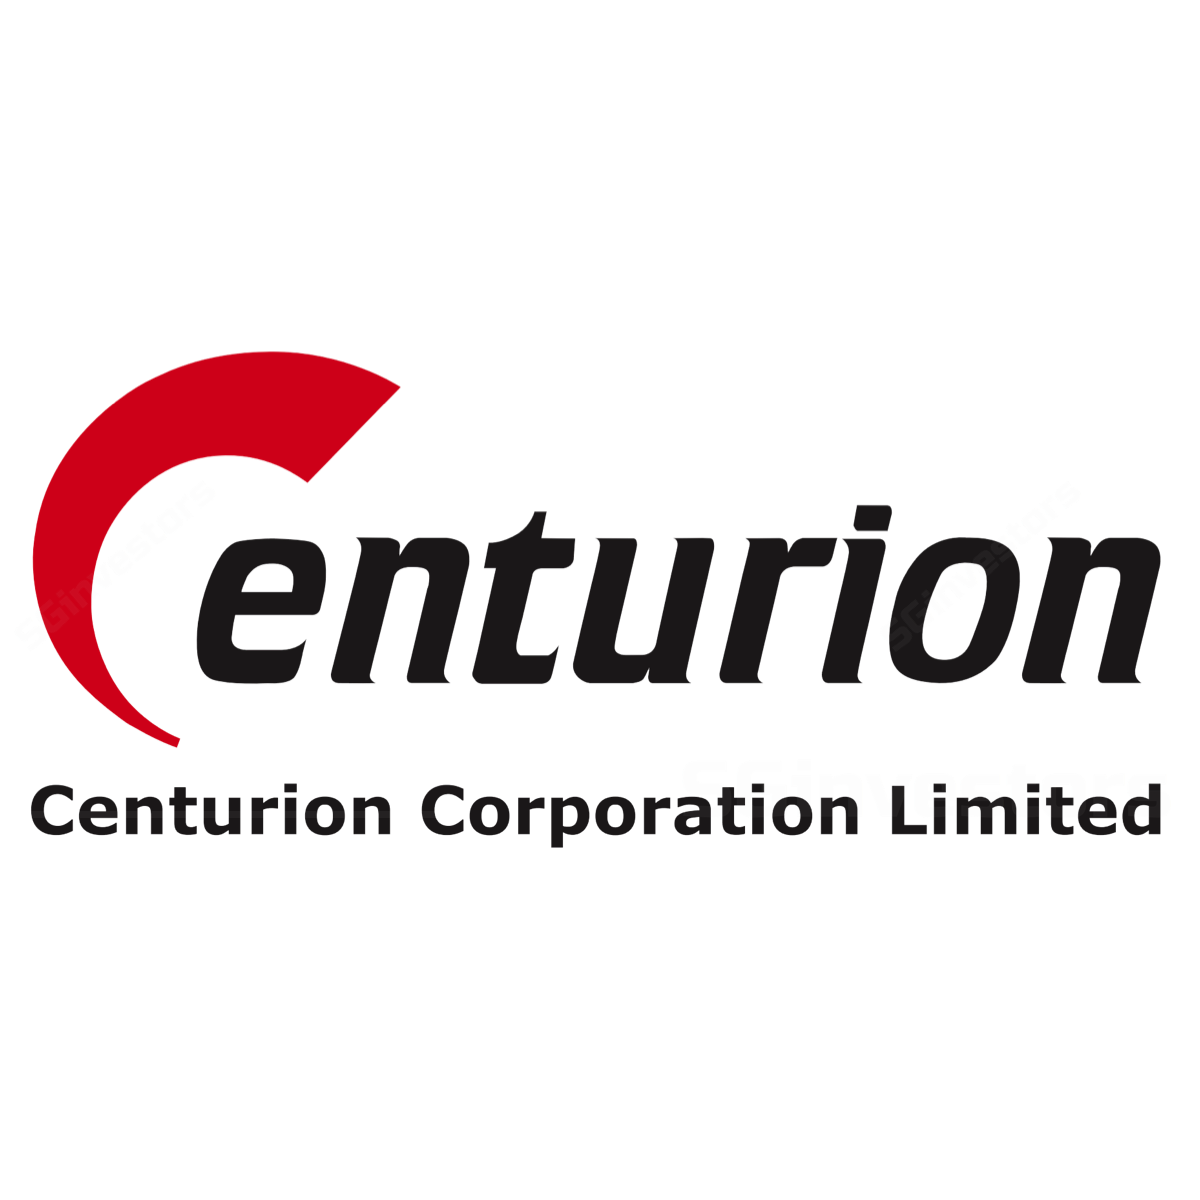 Centurion Corporation Limited - Phillip Securities 2017-08-11: Stellar Performance Continues